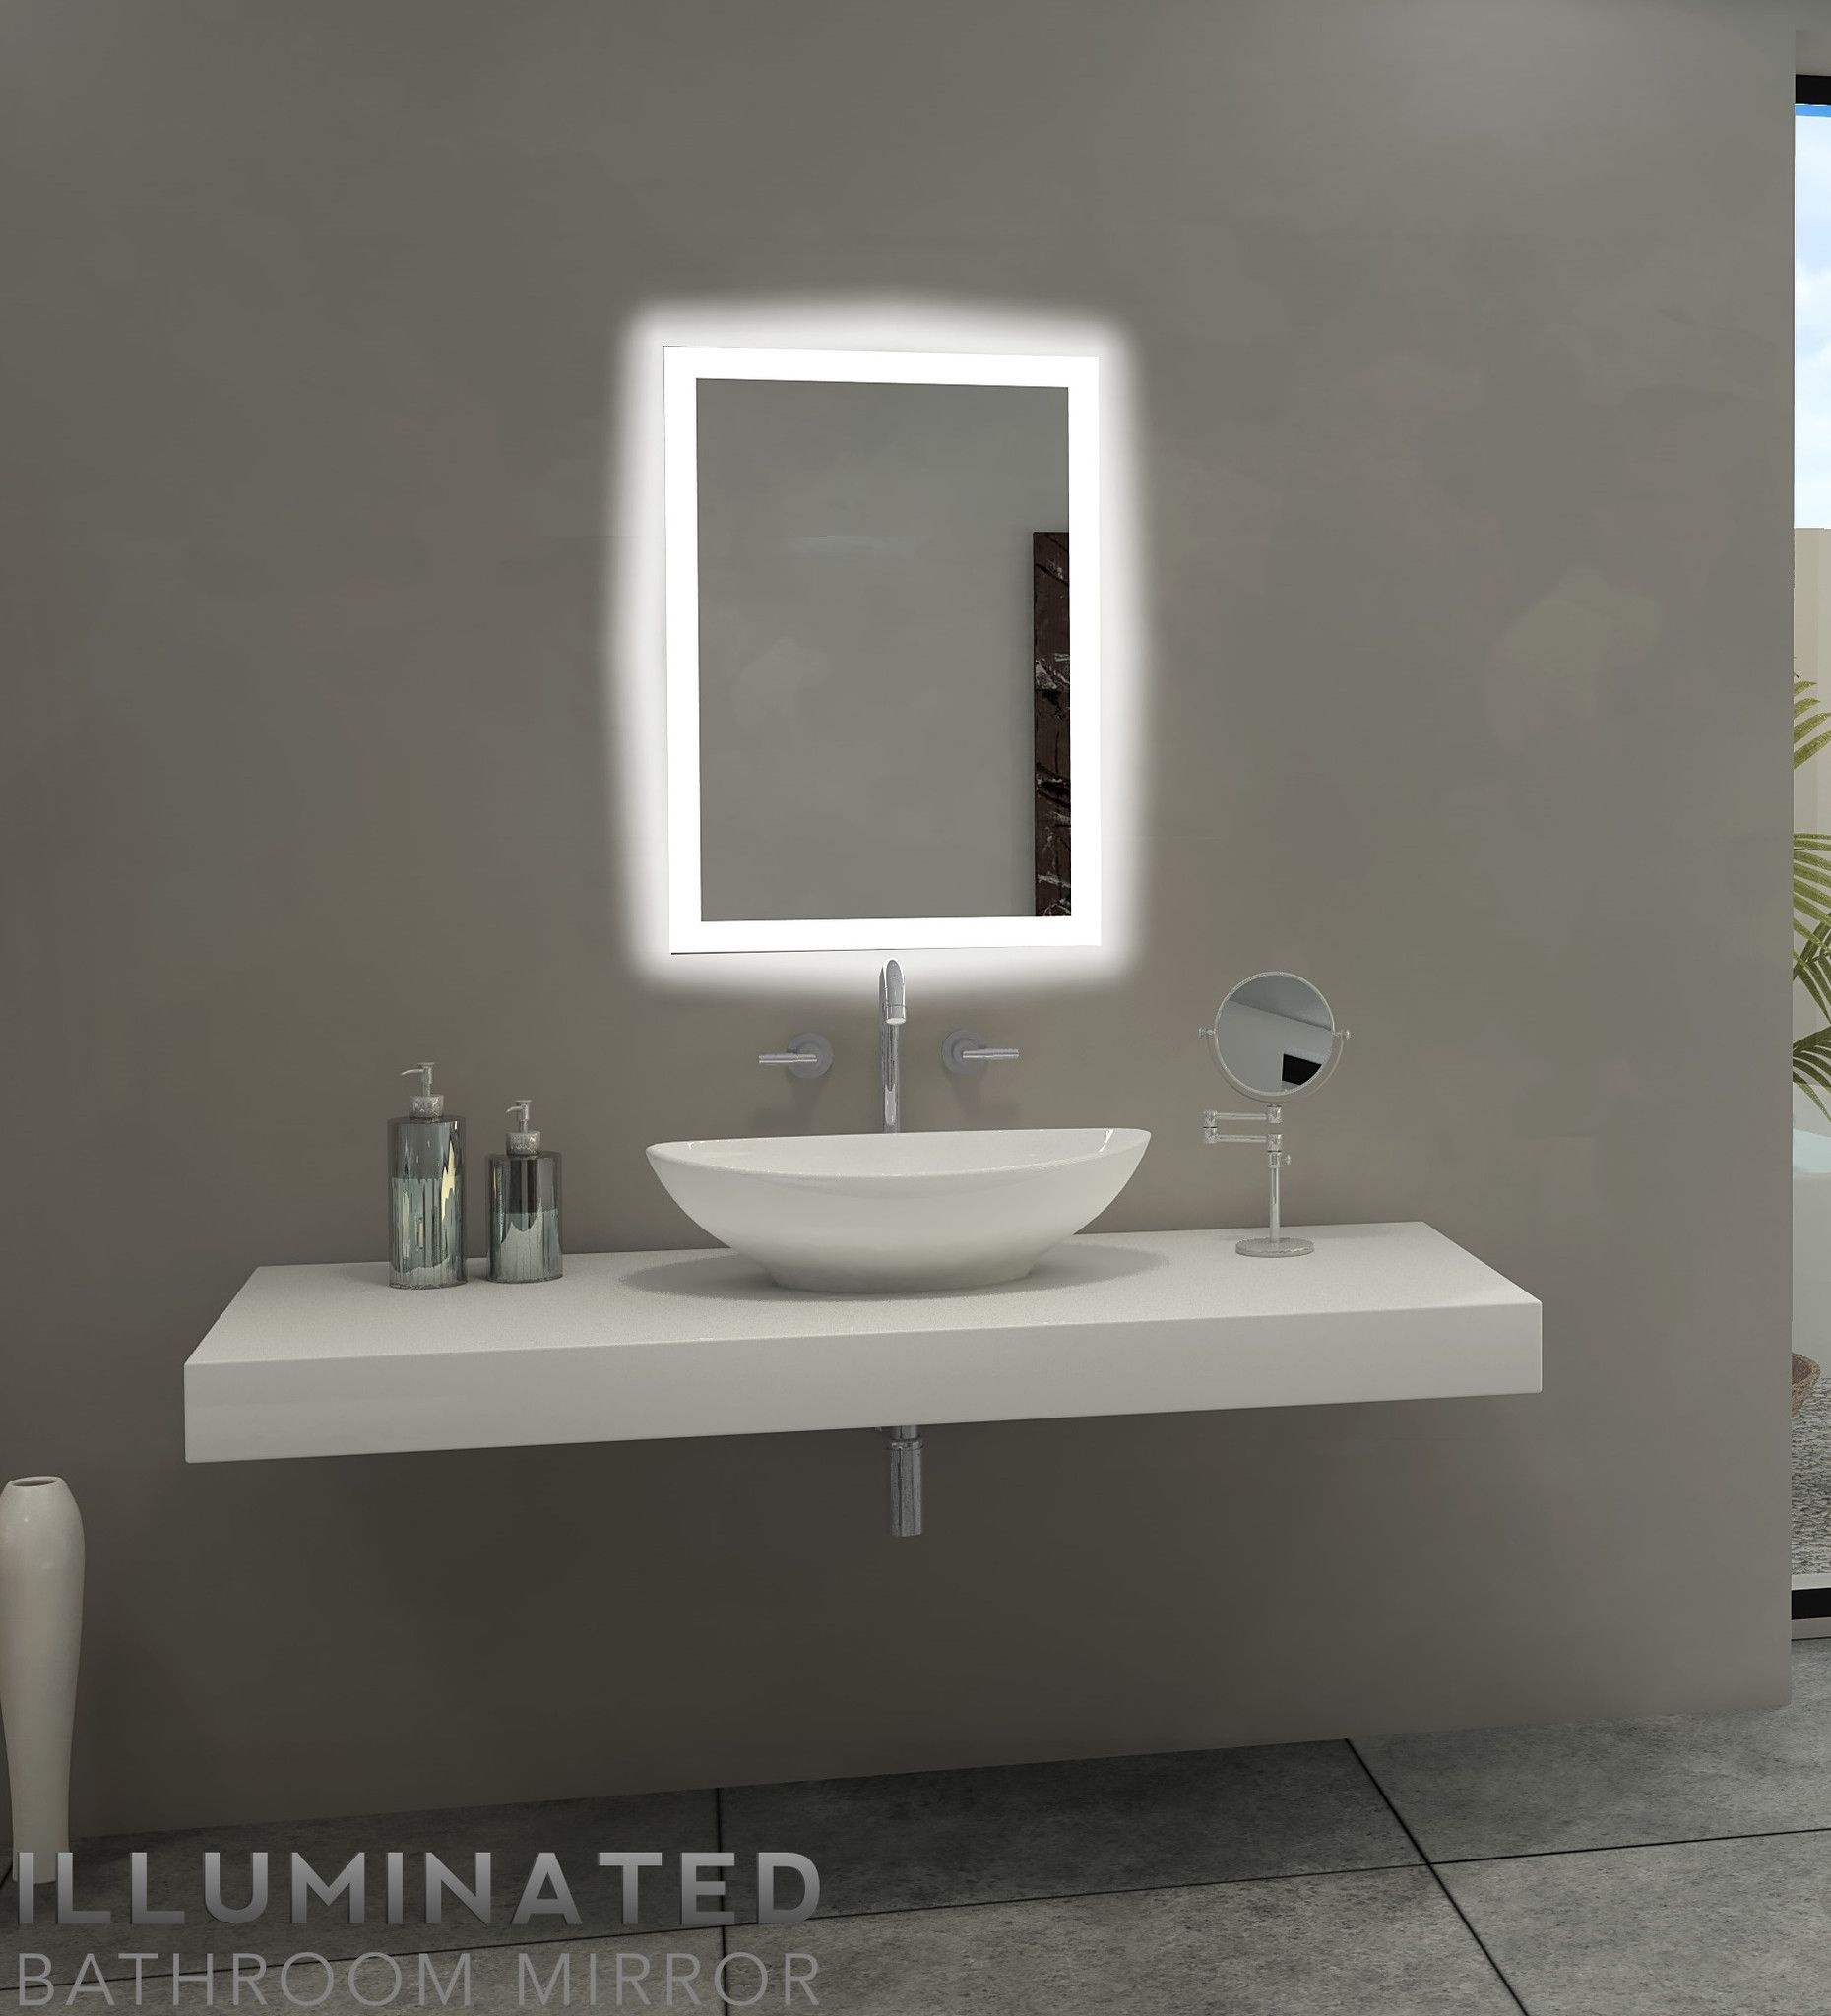 Dimmable backlit mirror rectangle 20 x 28 backlit bathroom dimmable backlit mirror rectangle 20 x 28 xflitez Images